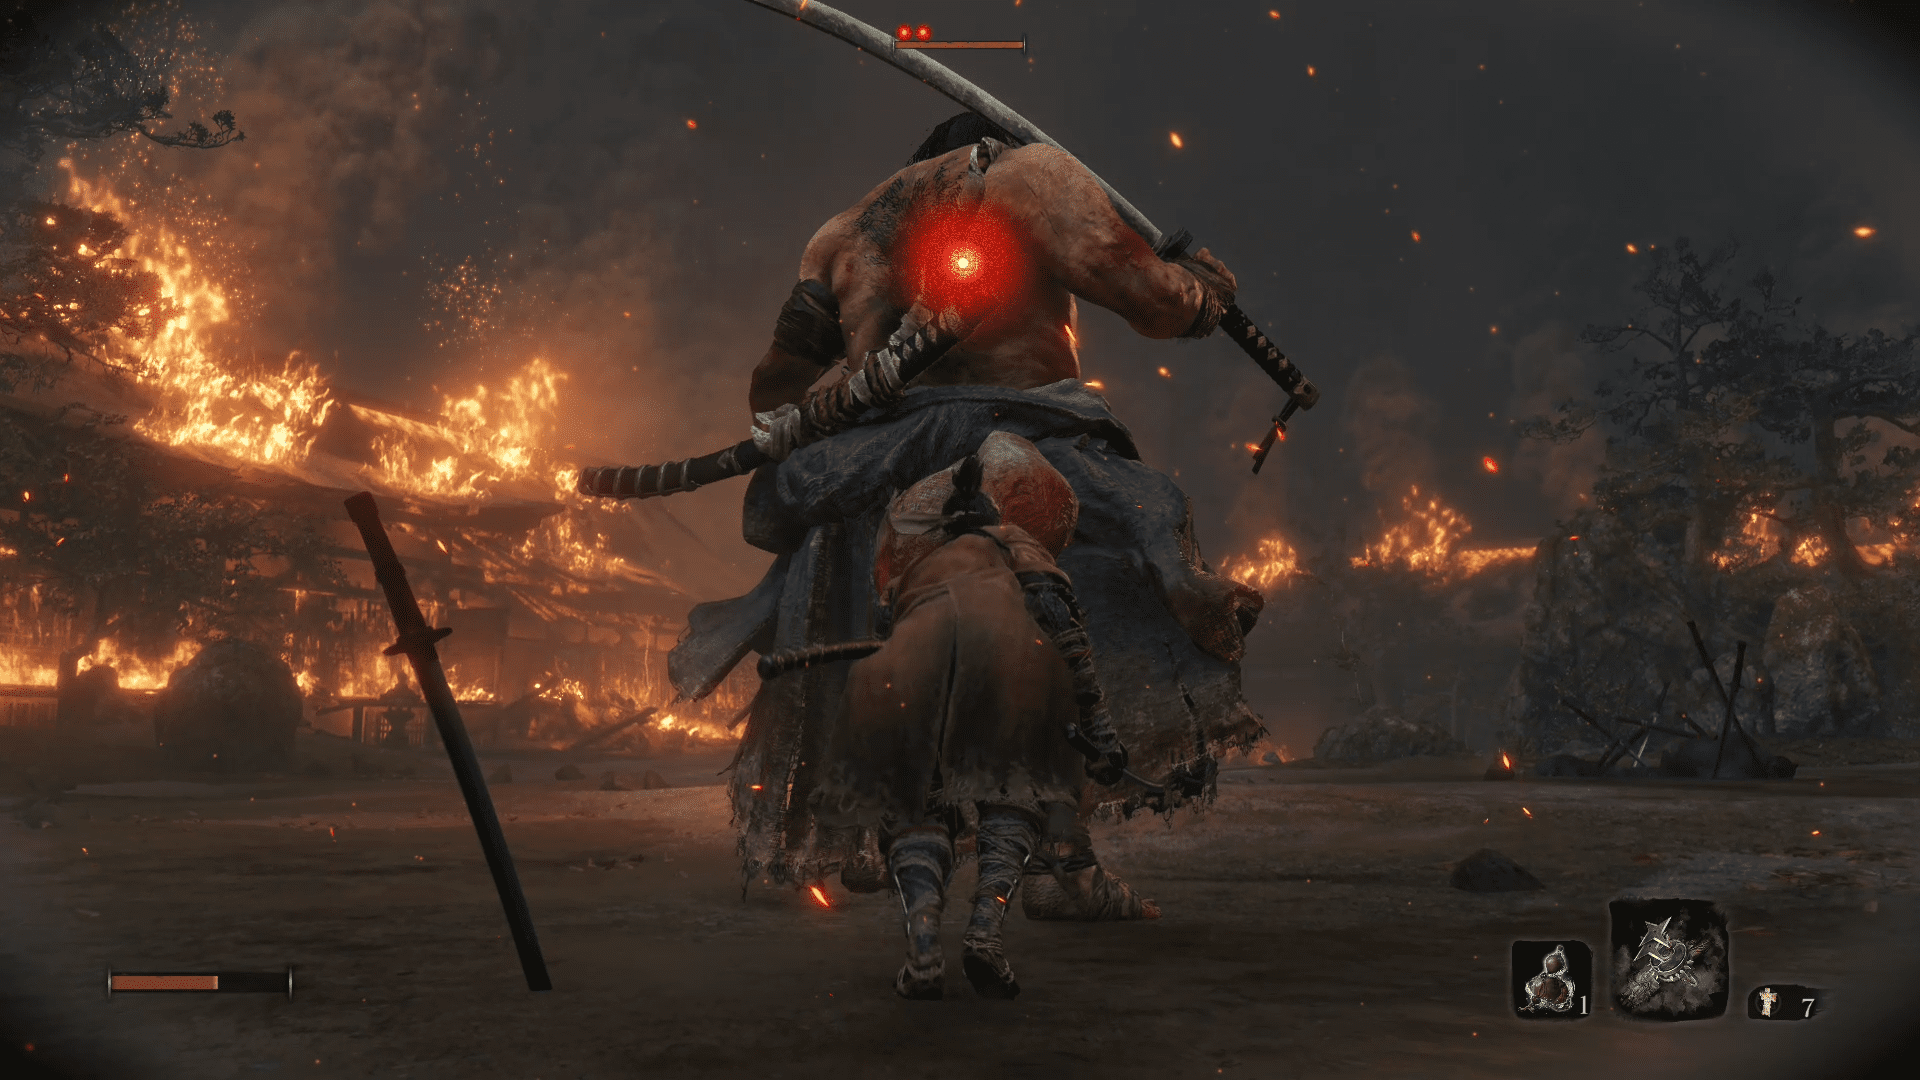 Sekiro: Shadows Die Twice - How To Beat Juzou The Drunkard Easily